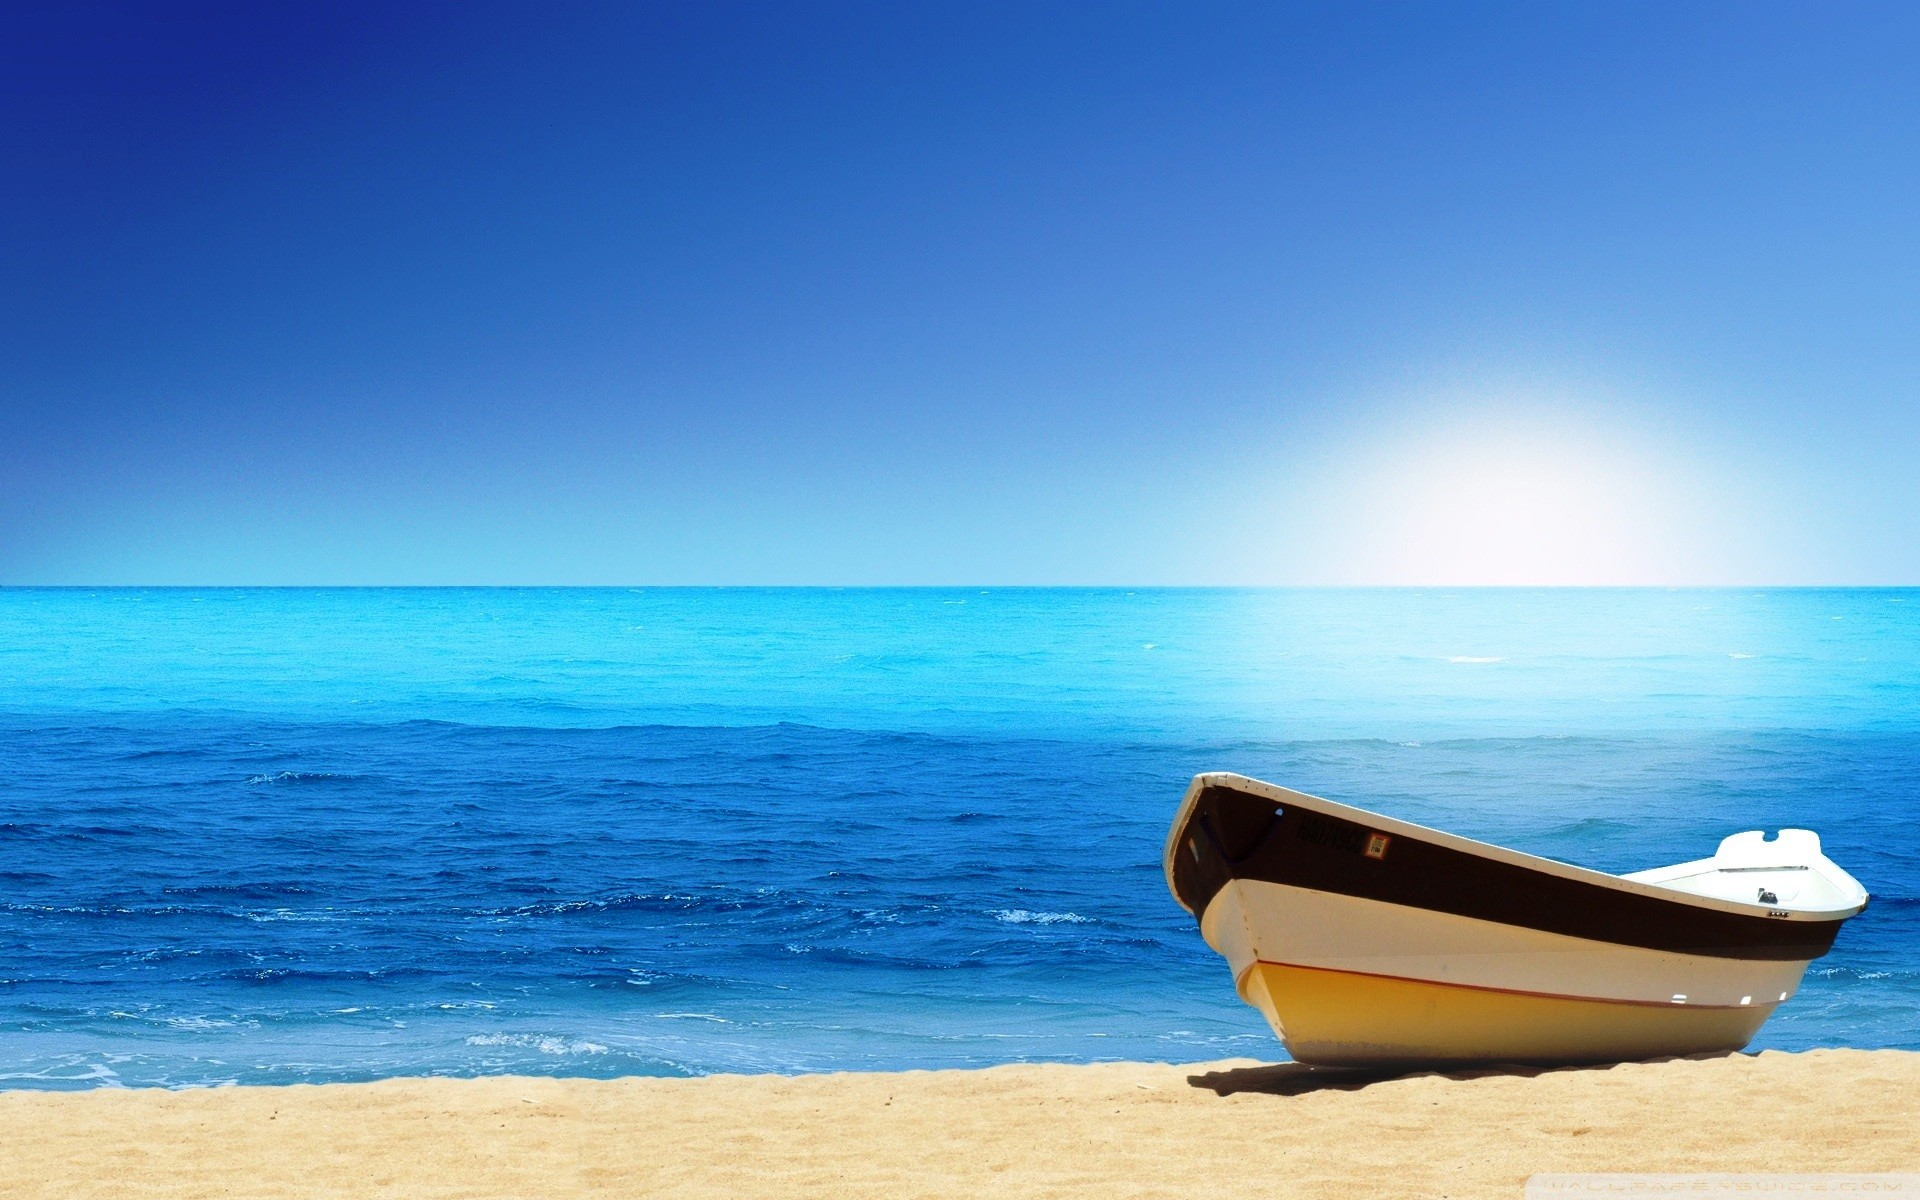 Beach And Boat Nice Nature Wallpapers Wst07 | WallChest